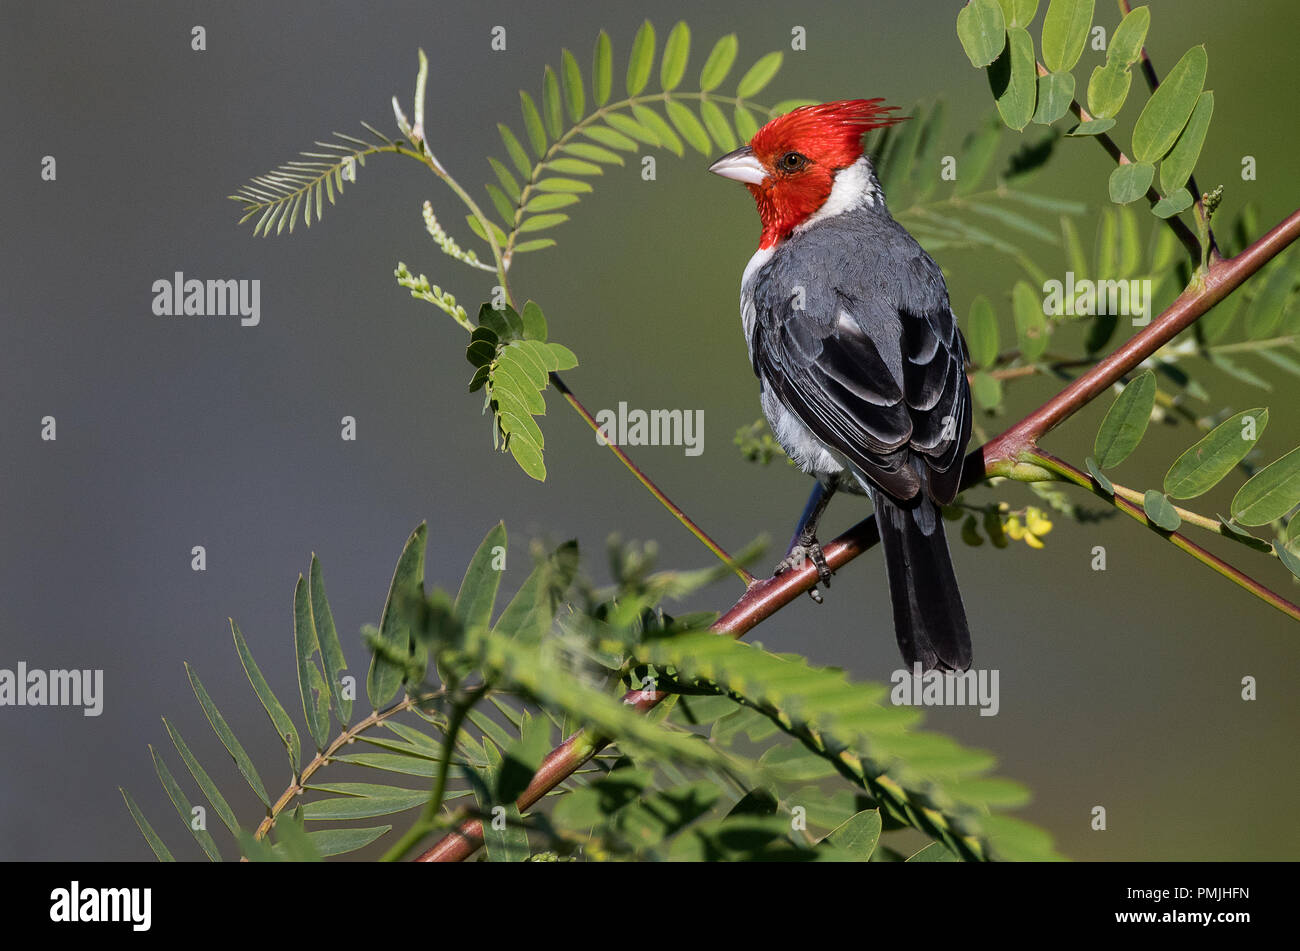 Red crested cardinal photographed in Buenos Aires, Argentina - Stock Image